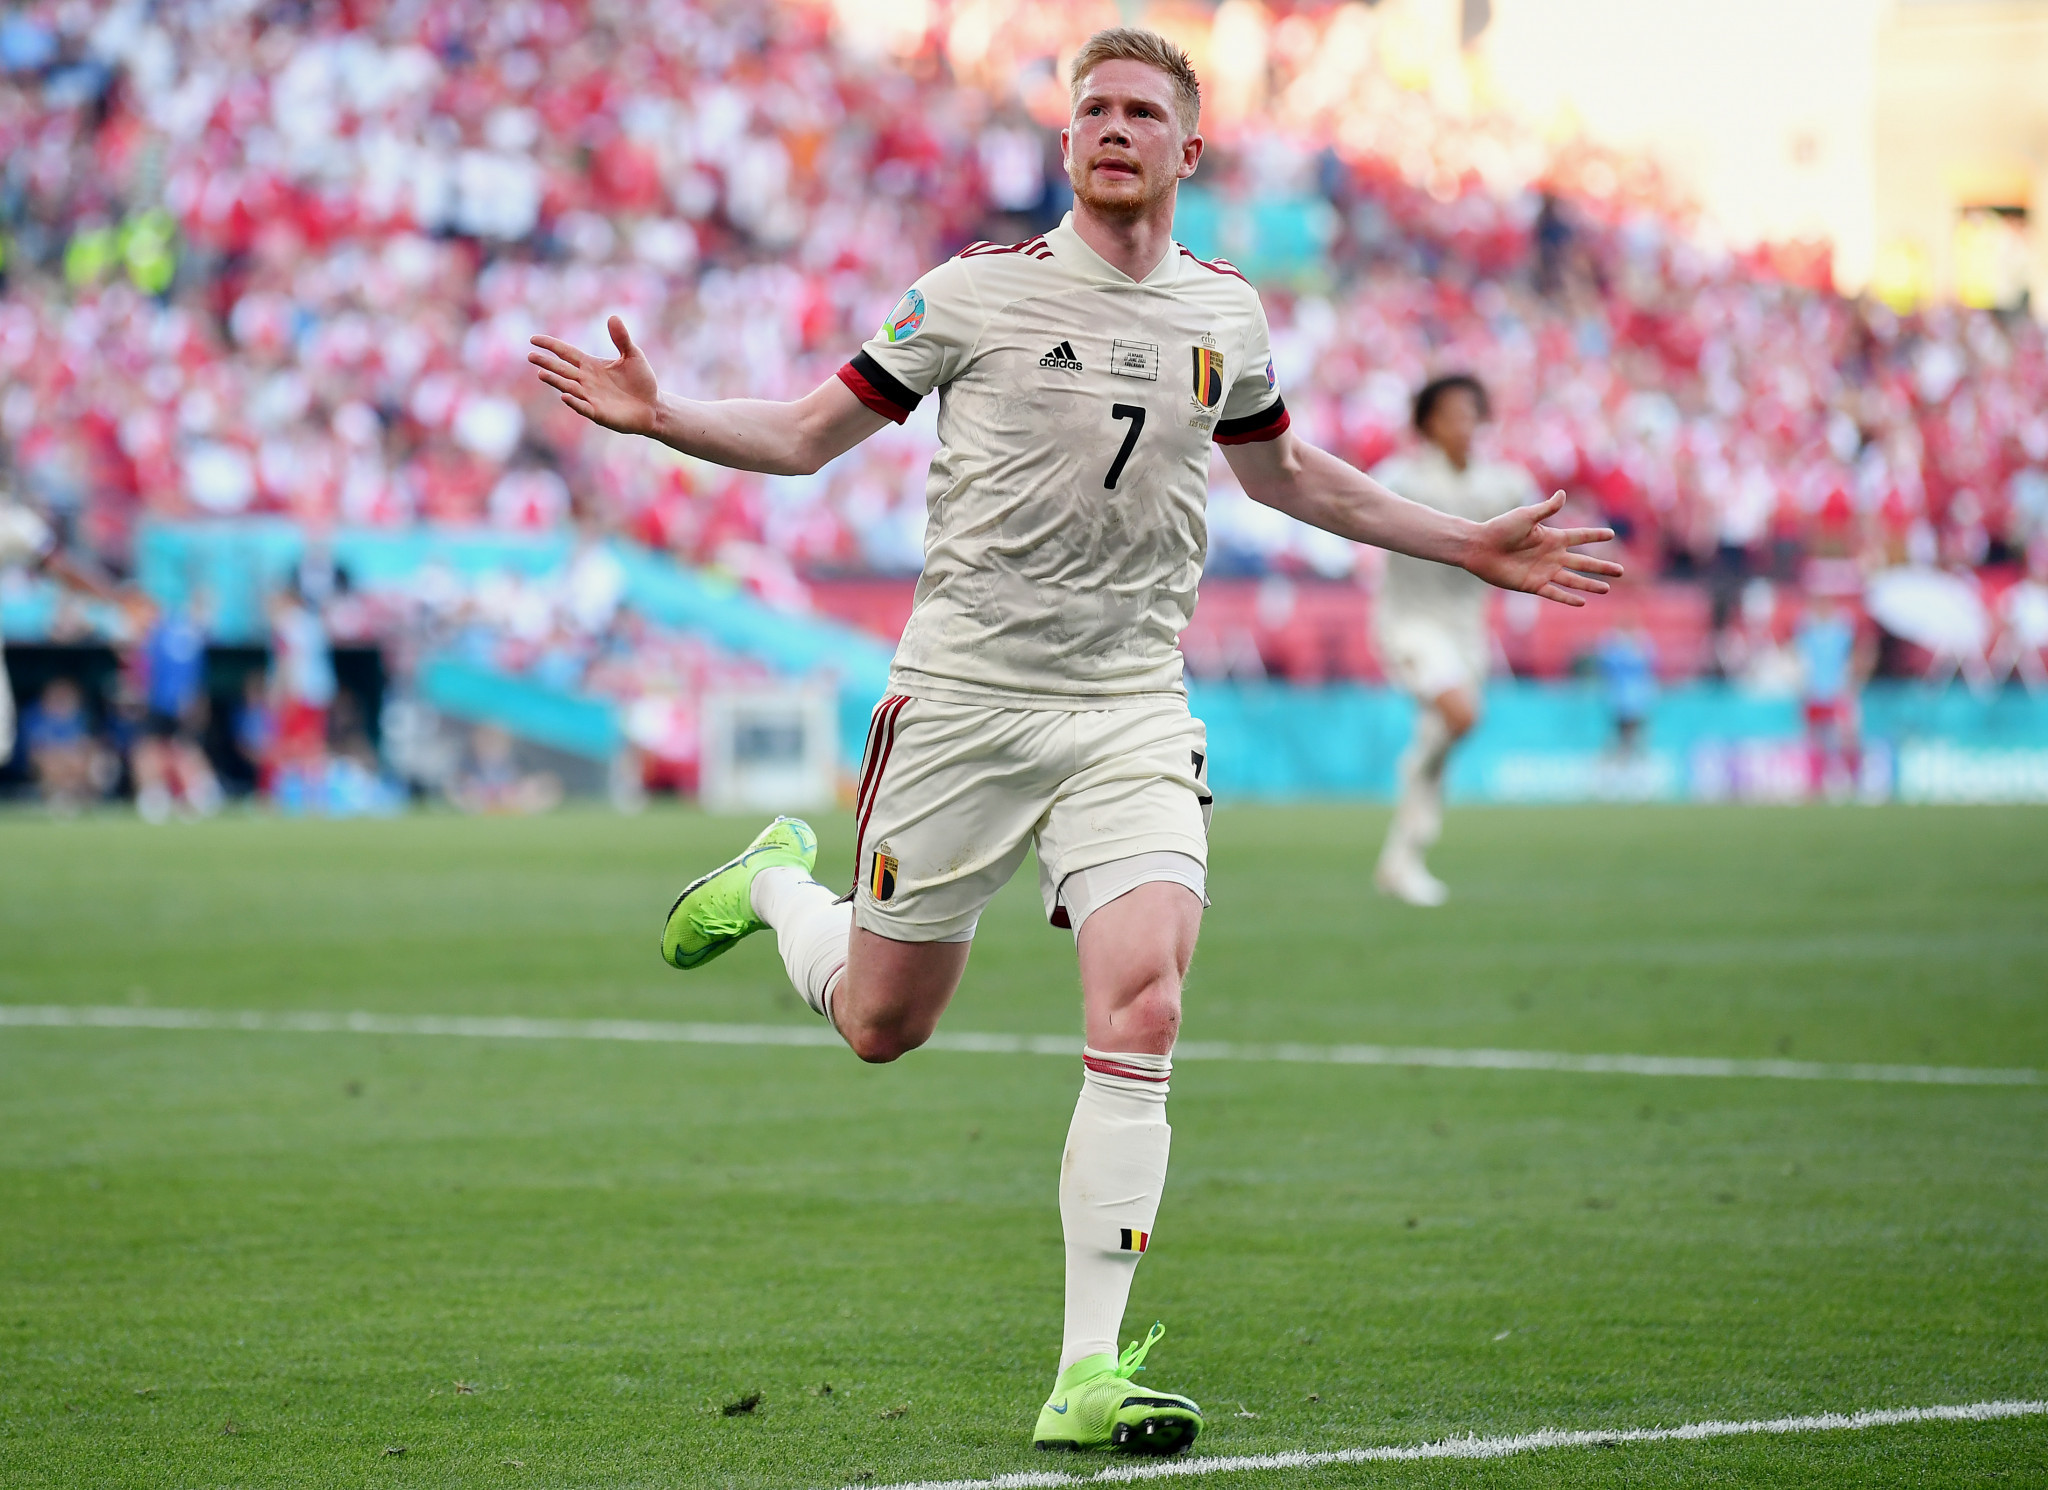 Kevin De Bruyne scored one goal and set another up in Belgium's come-from-behind victory over Denmark ©Getty Images